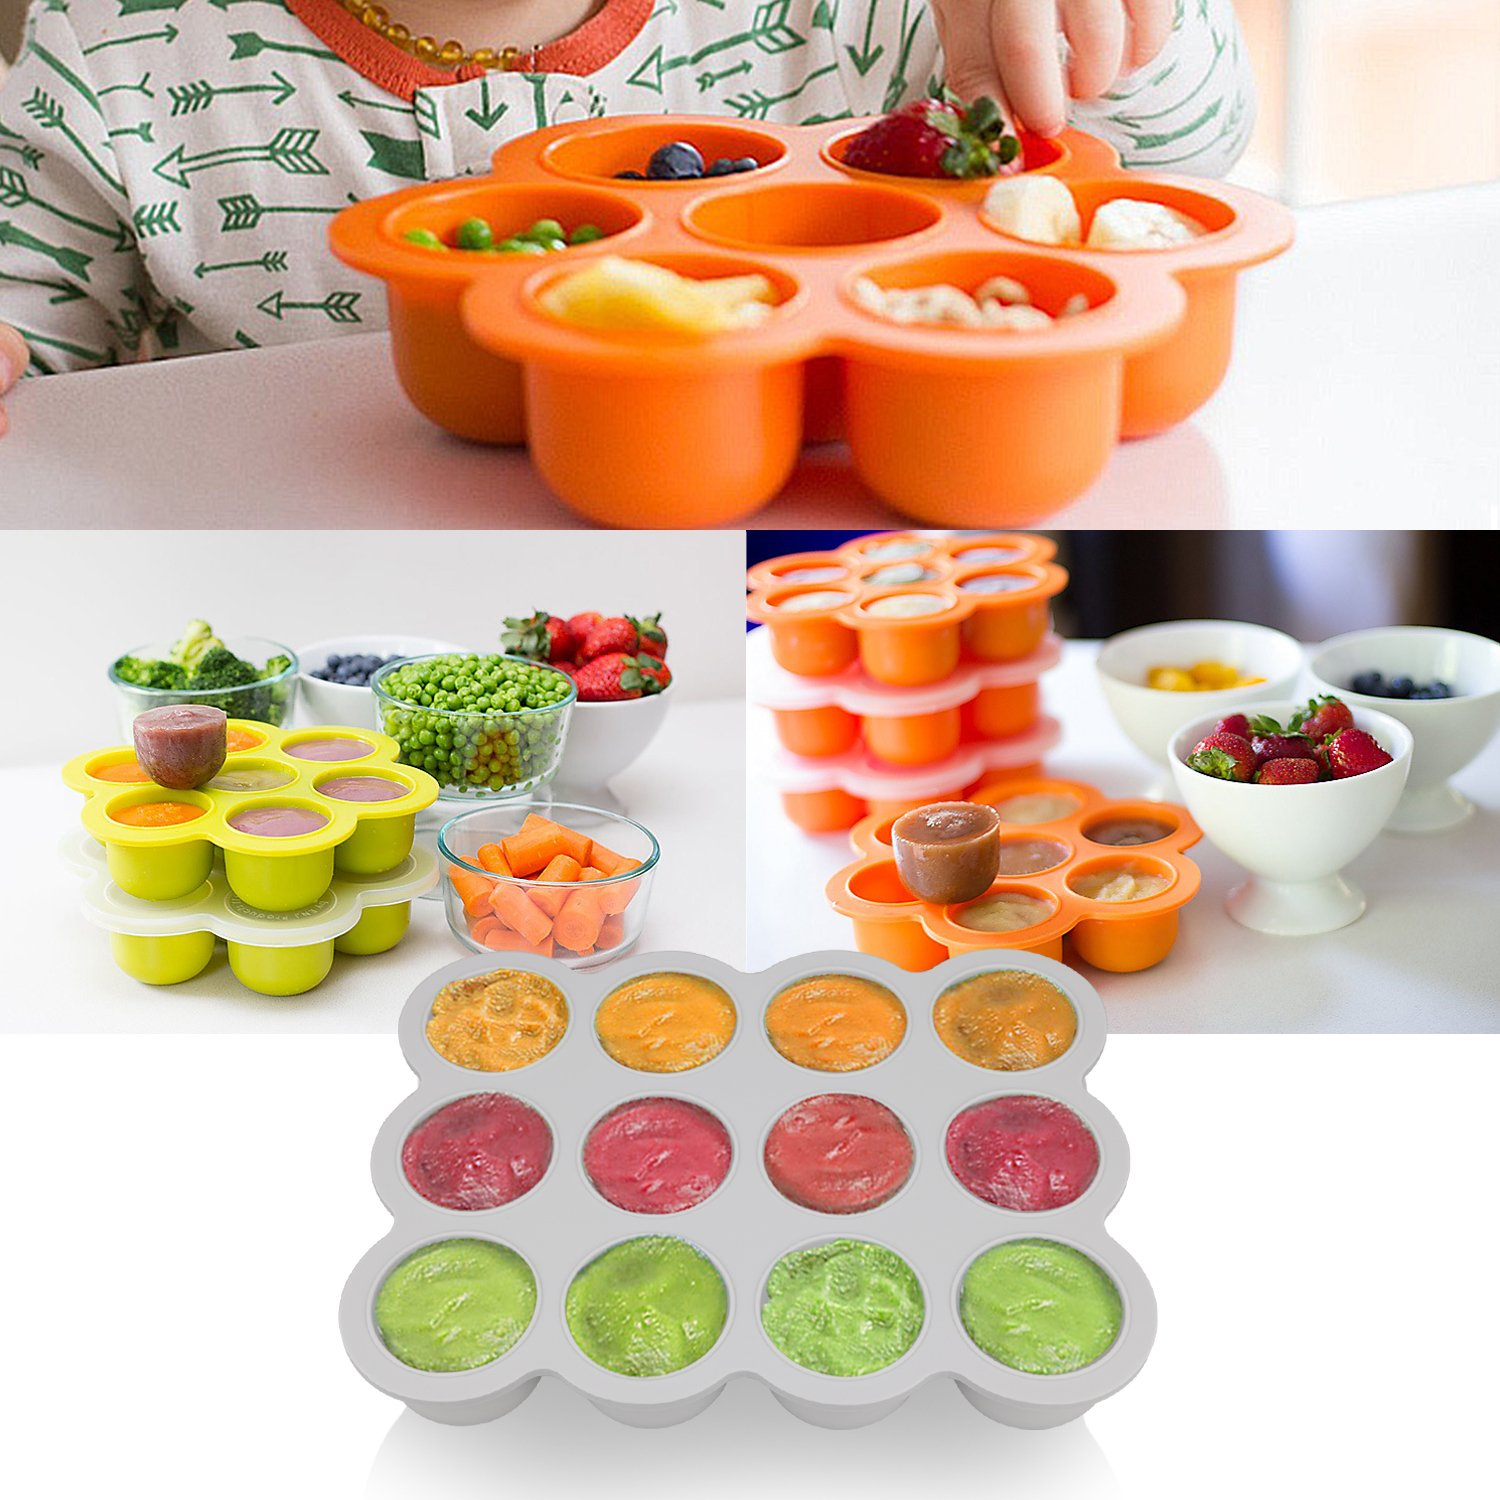 Amazon.com: Silicone Freezer Tray for Baby Food Storage - Reusable Baby Food Storage Containers - Vegetable & Fruit Purees and Breast Milk - BPA FREE & FDA ...